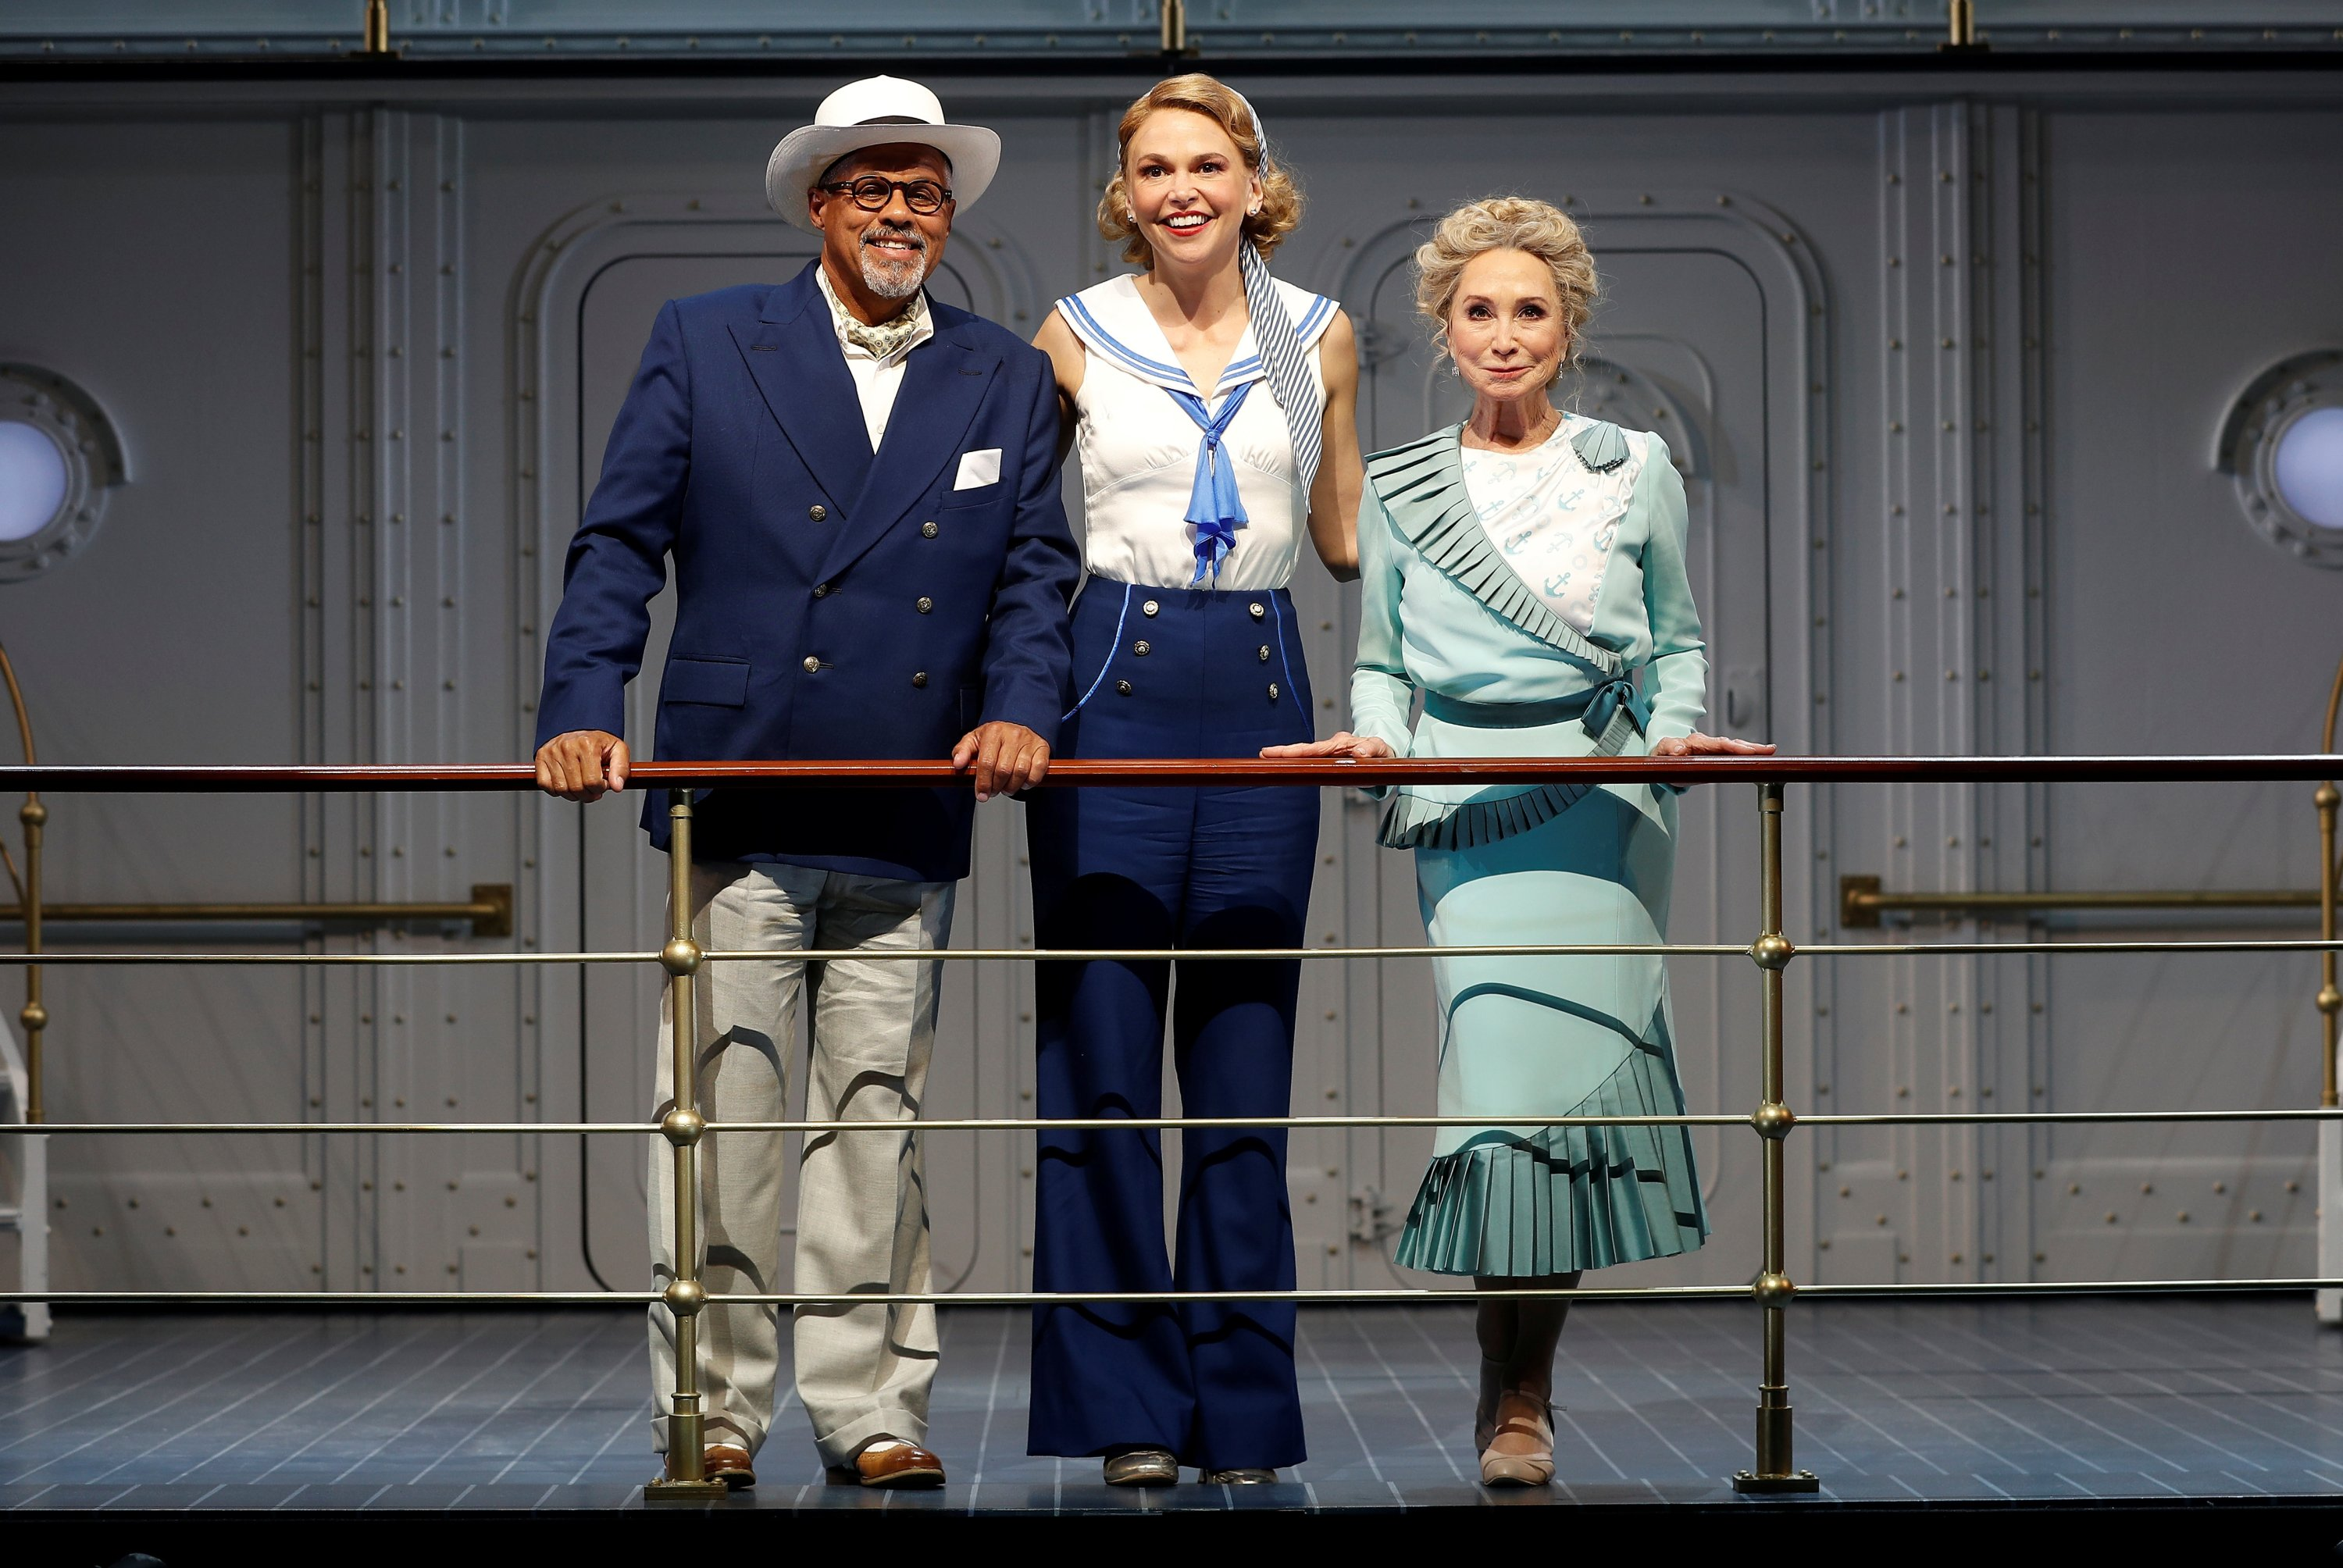 Gary Wilmot, Sutton Foster and Felicity Kendal pose for a photograph during a media day for the show 'Anything Goes,' running at the Barbican Centre theater, in London, Britain, July 28, 2021. (REUTERS Photo)